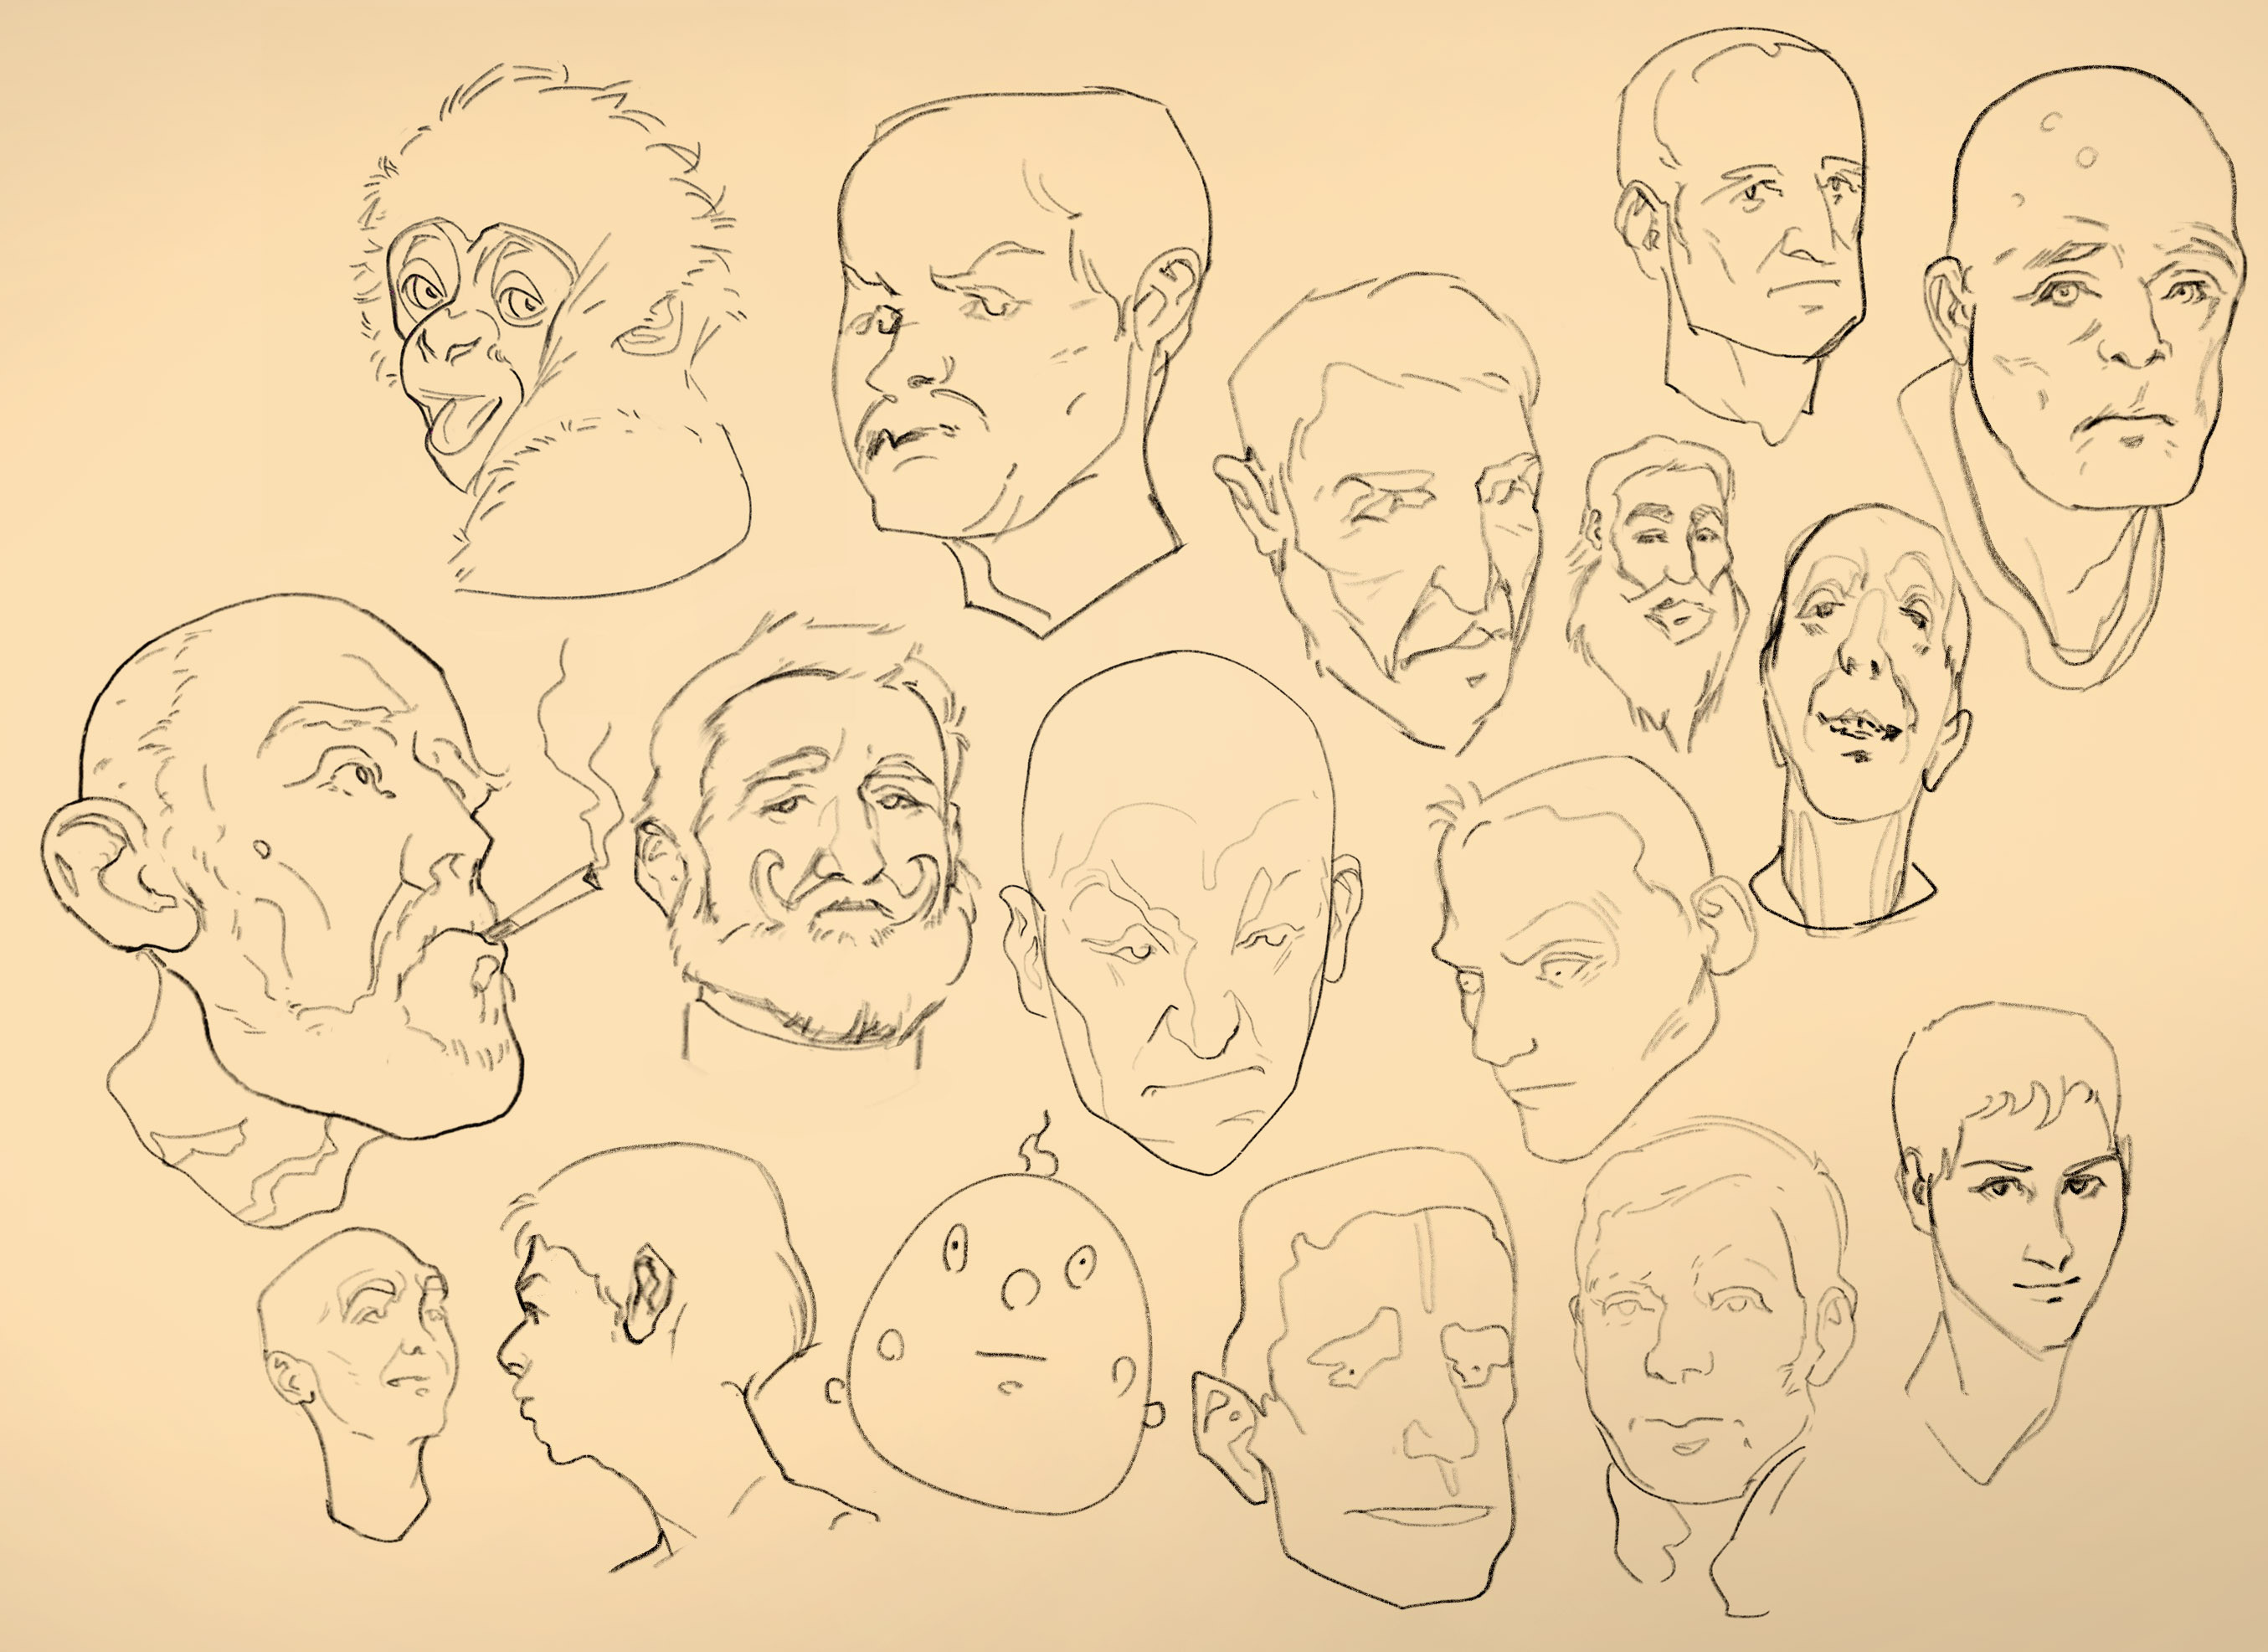 Doodly heads